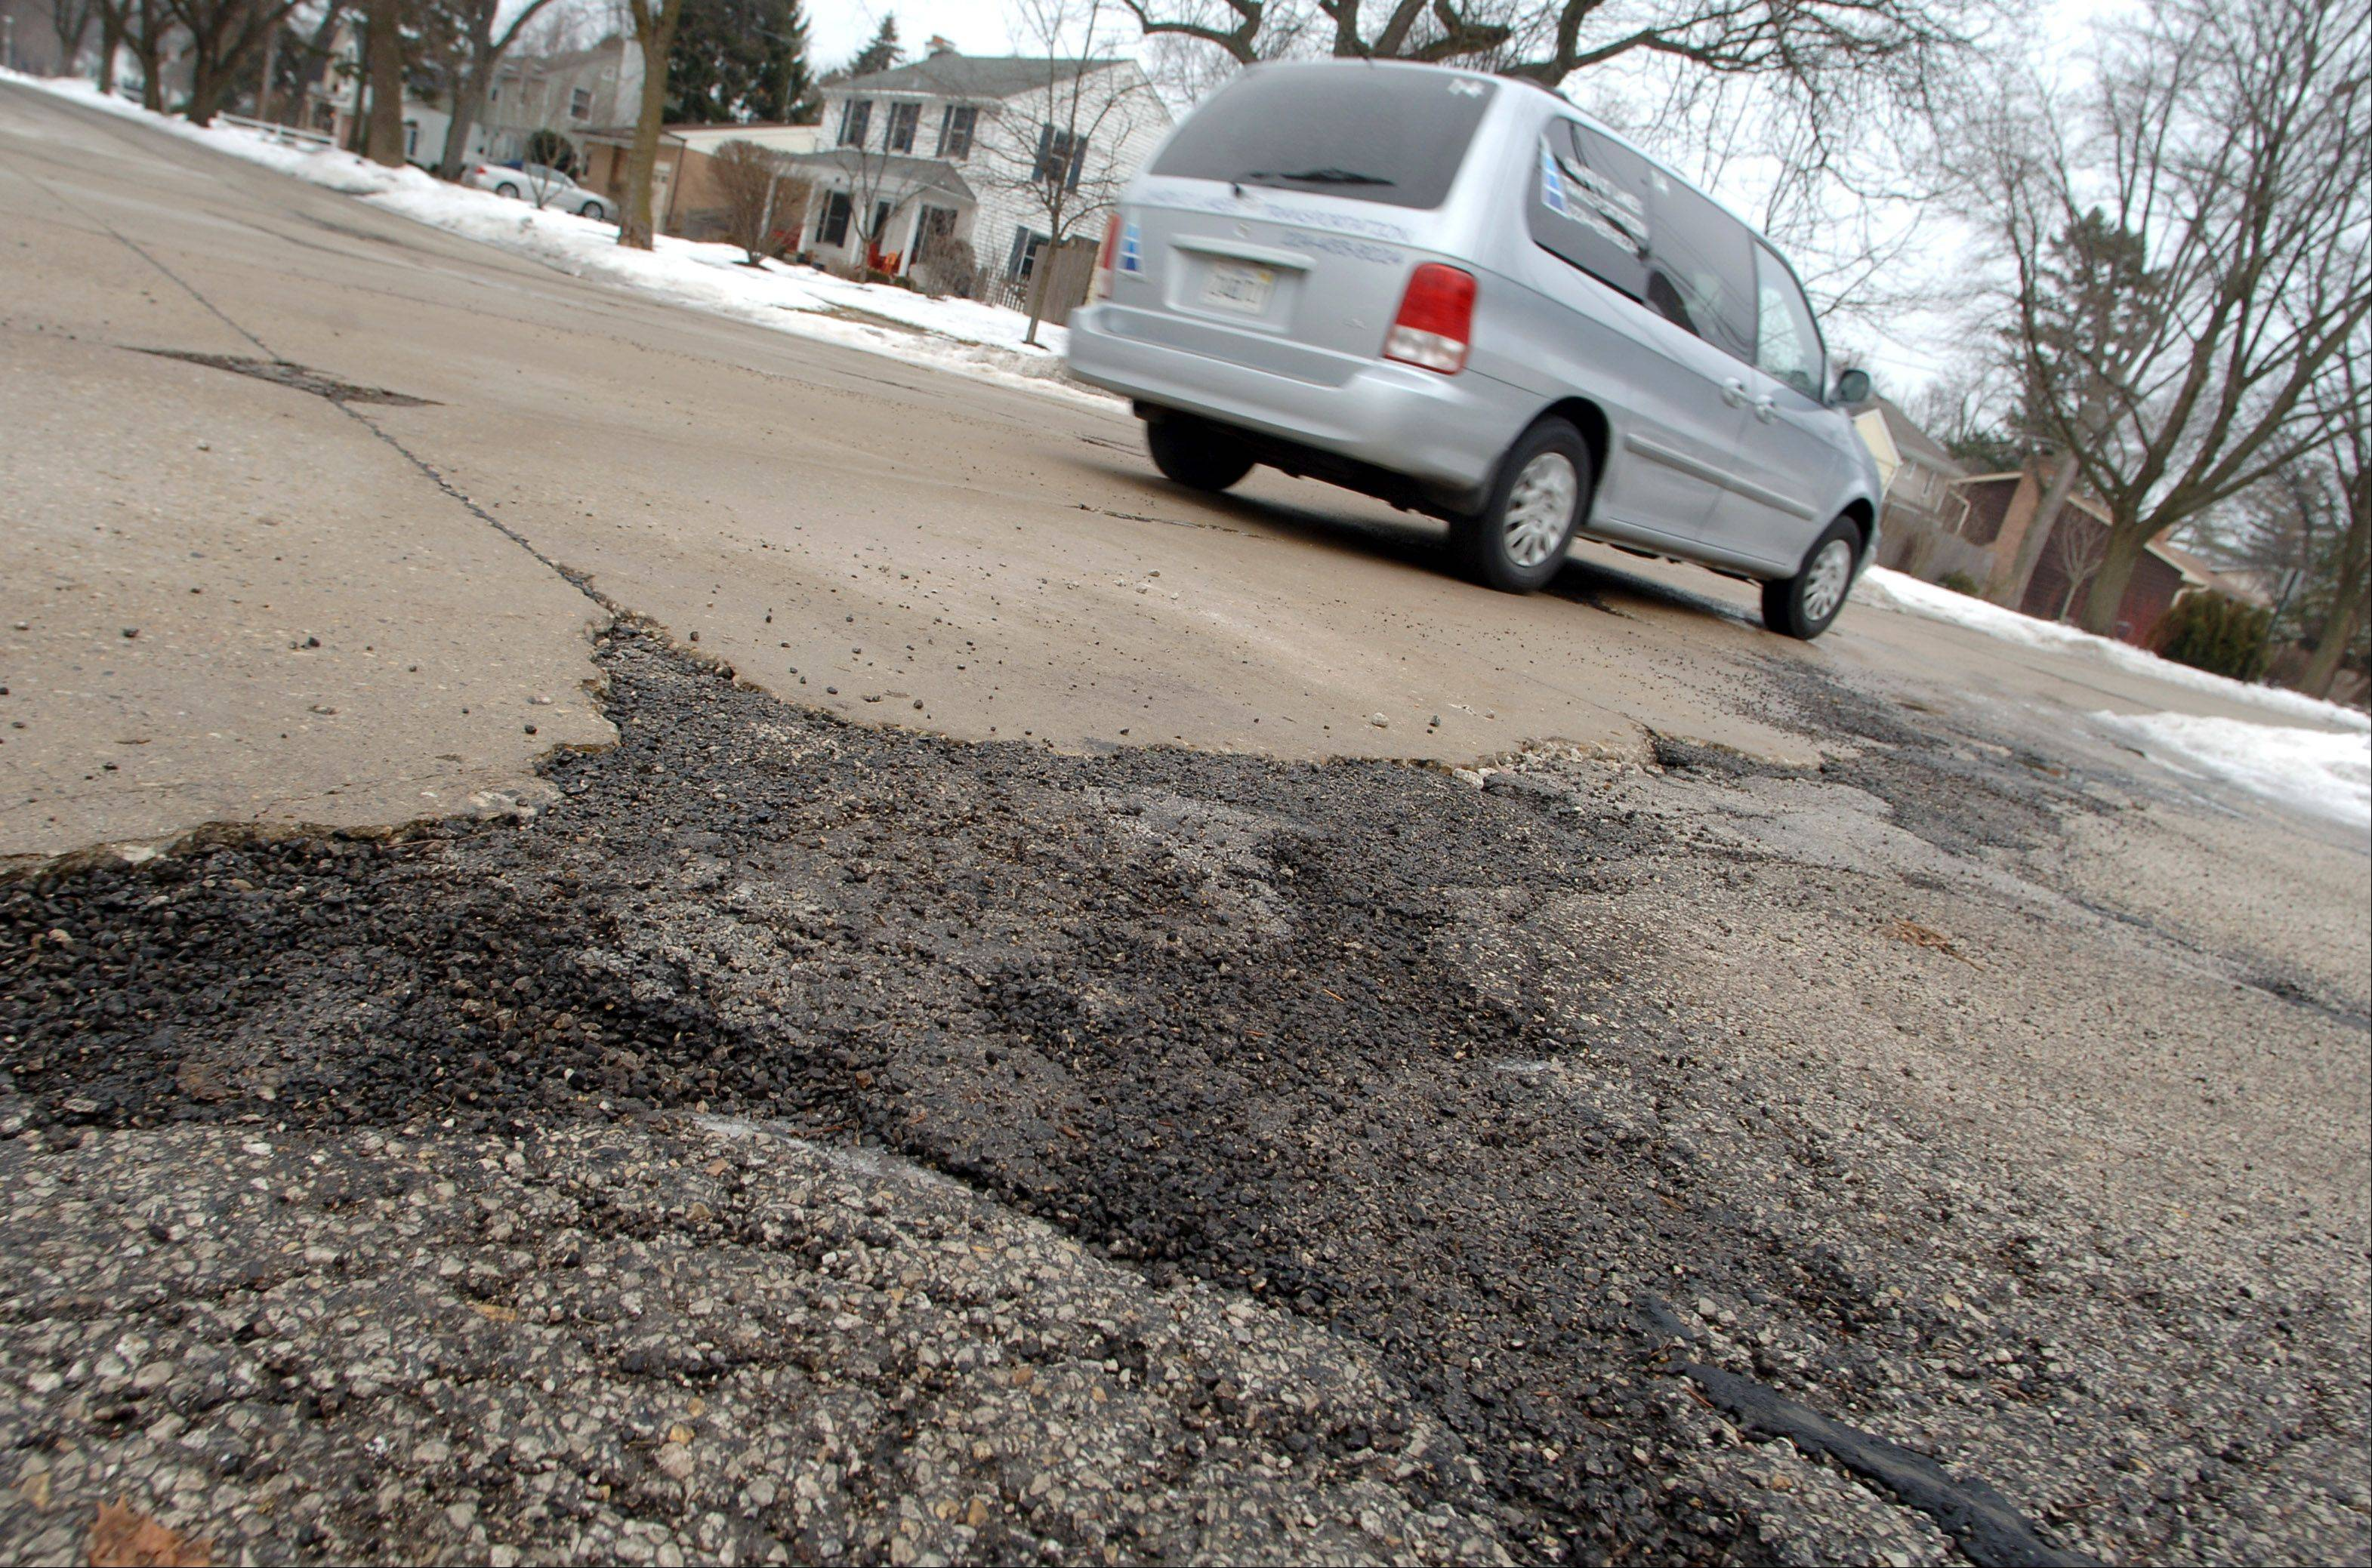 A driver passes through a well-patched intersection of West Rockland Road and Burdick Street in Libertyville. Voters soon will receive information on a village request to approve a tax increase to pay for road repairs.